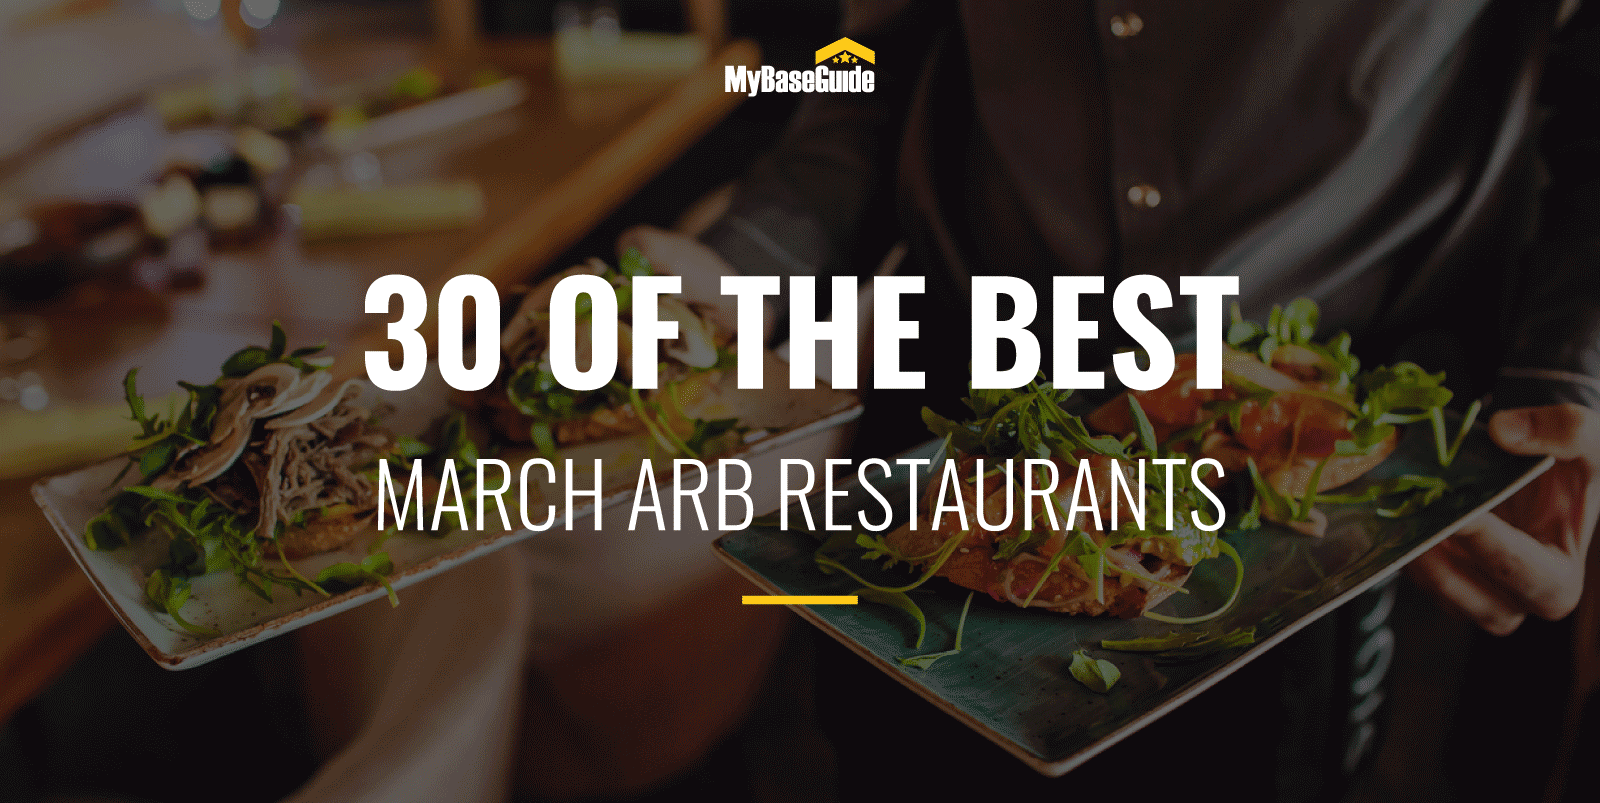 30 of the Best March ARB Restaurants